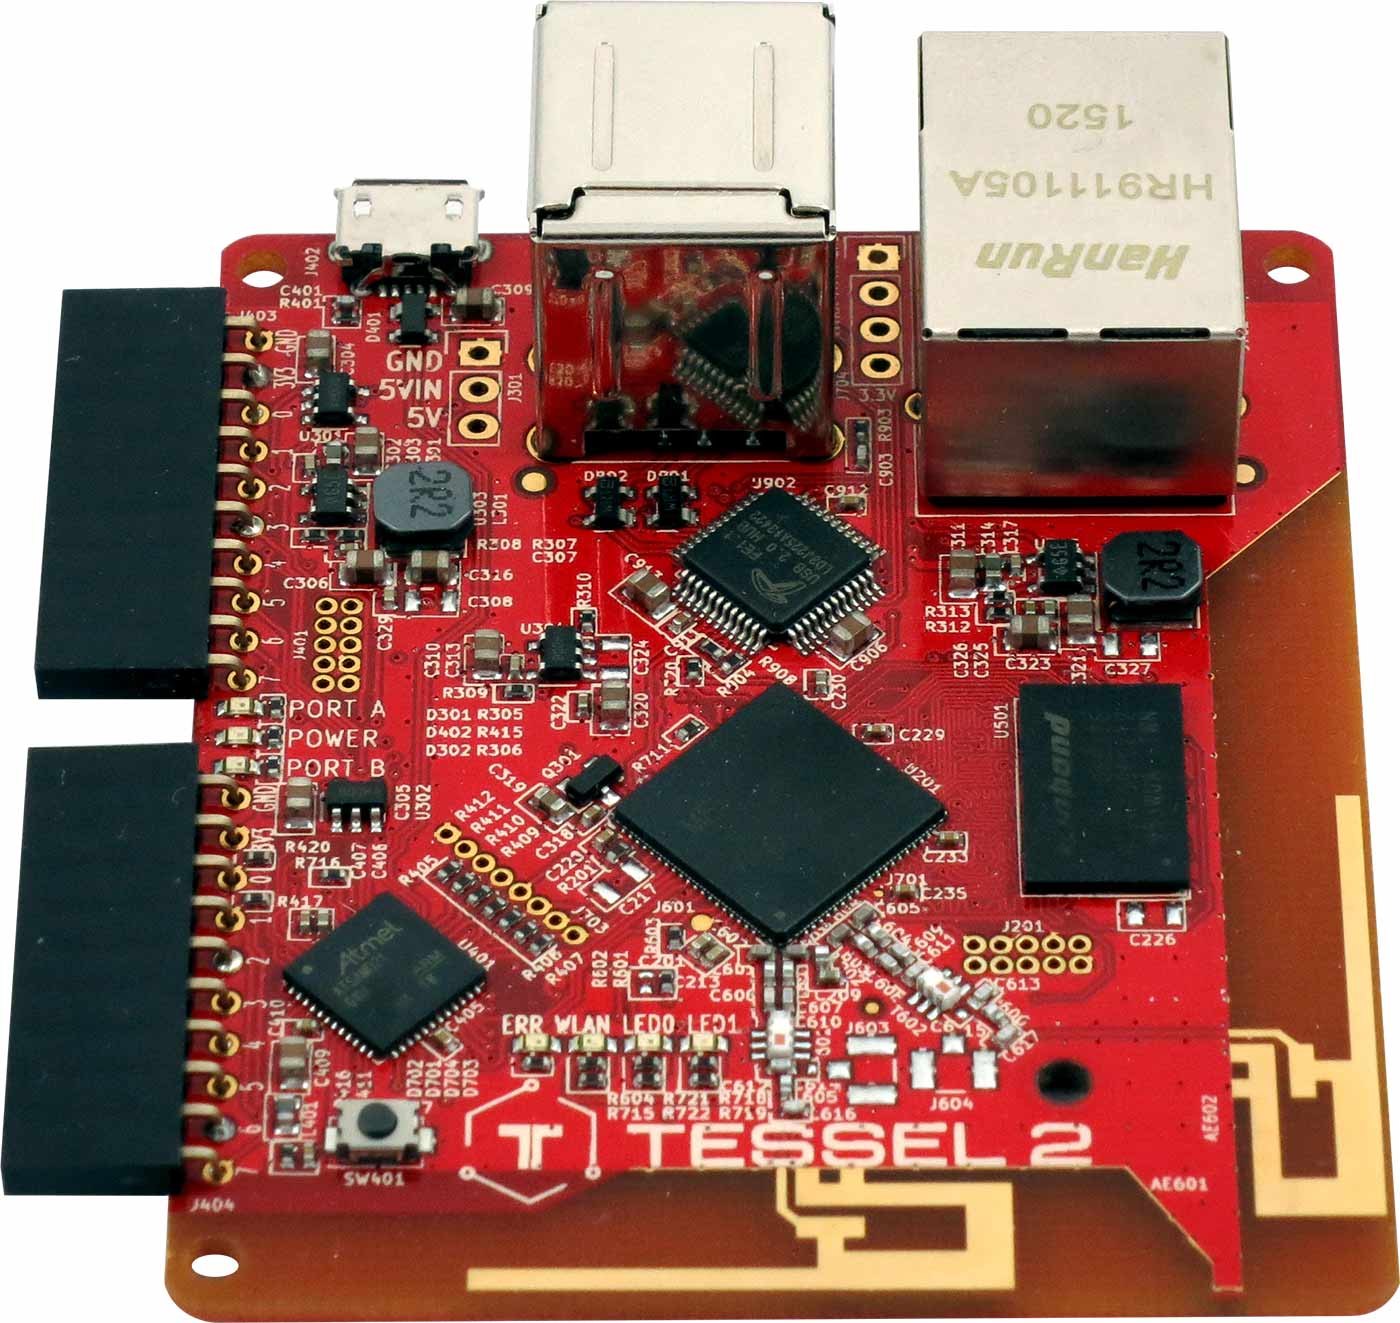 Tessel 2 out of the box